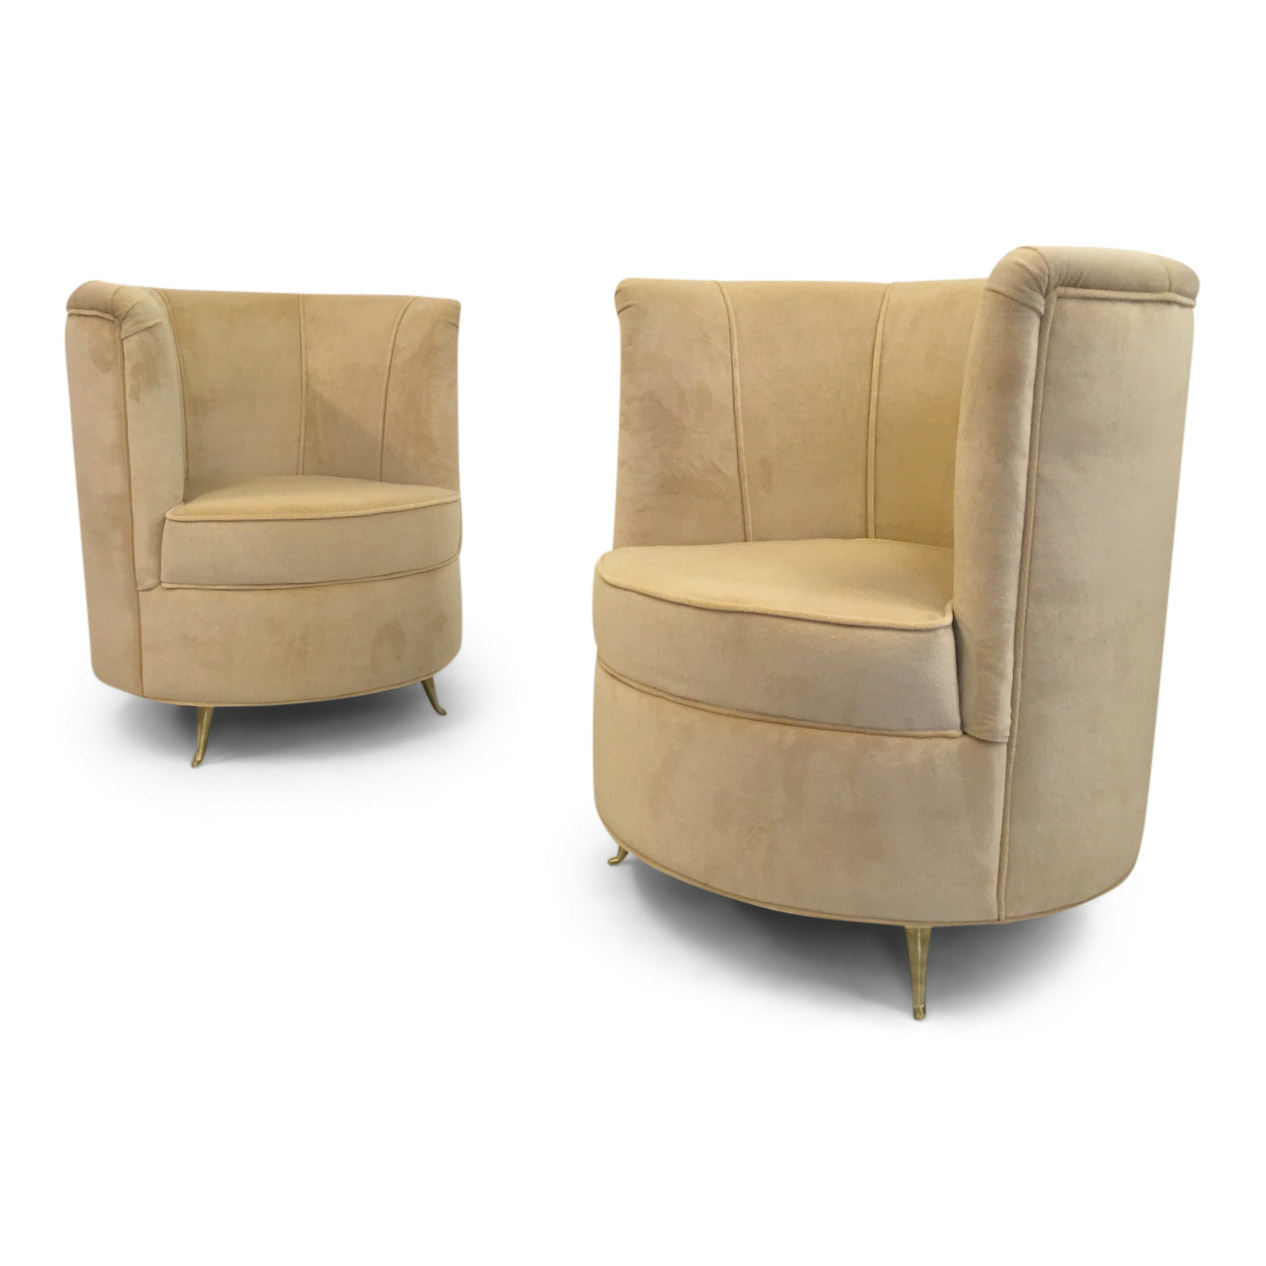 Admirable A Pair Of 1970S Style Italian Cocktail Chairs With Brass Legs Download Free Architecture Designs Rallybritishbridgeorg